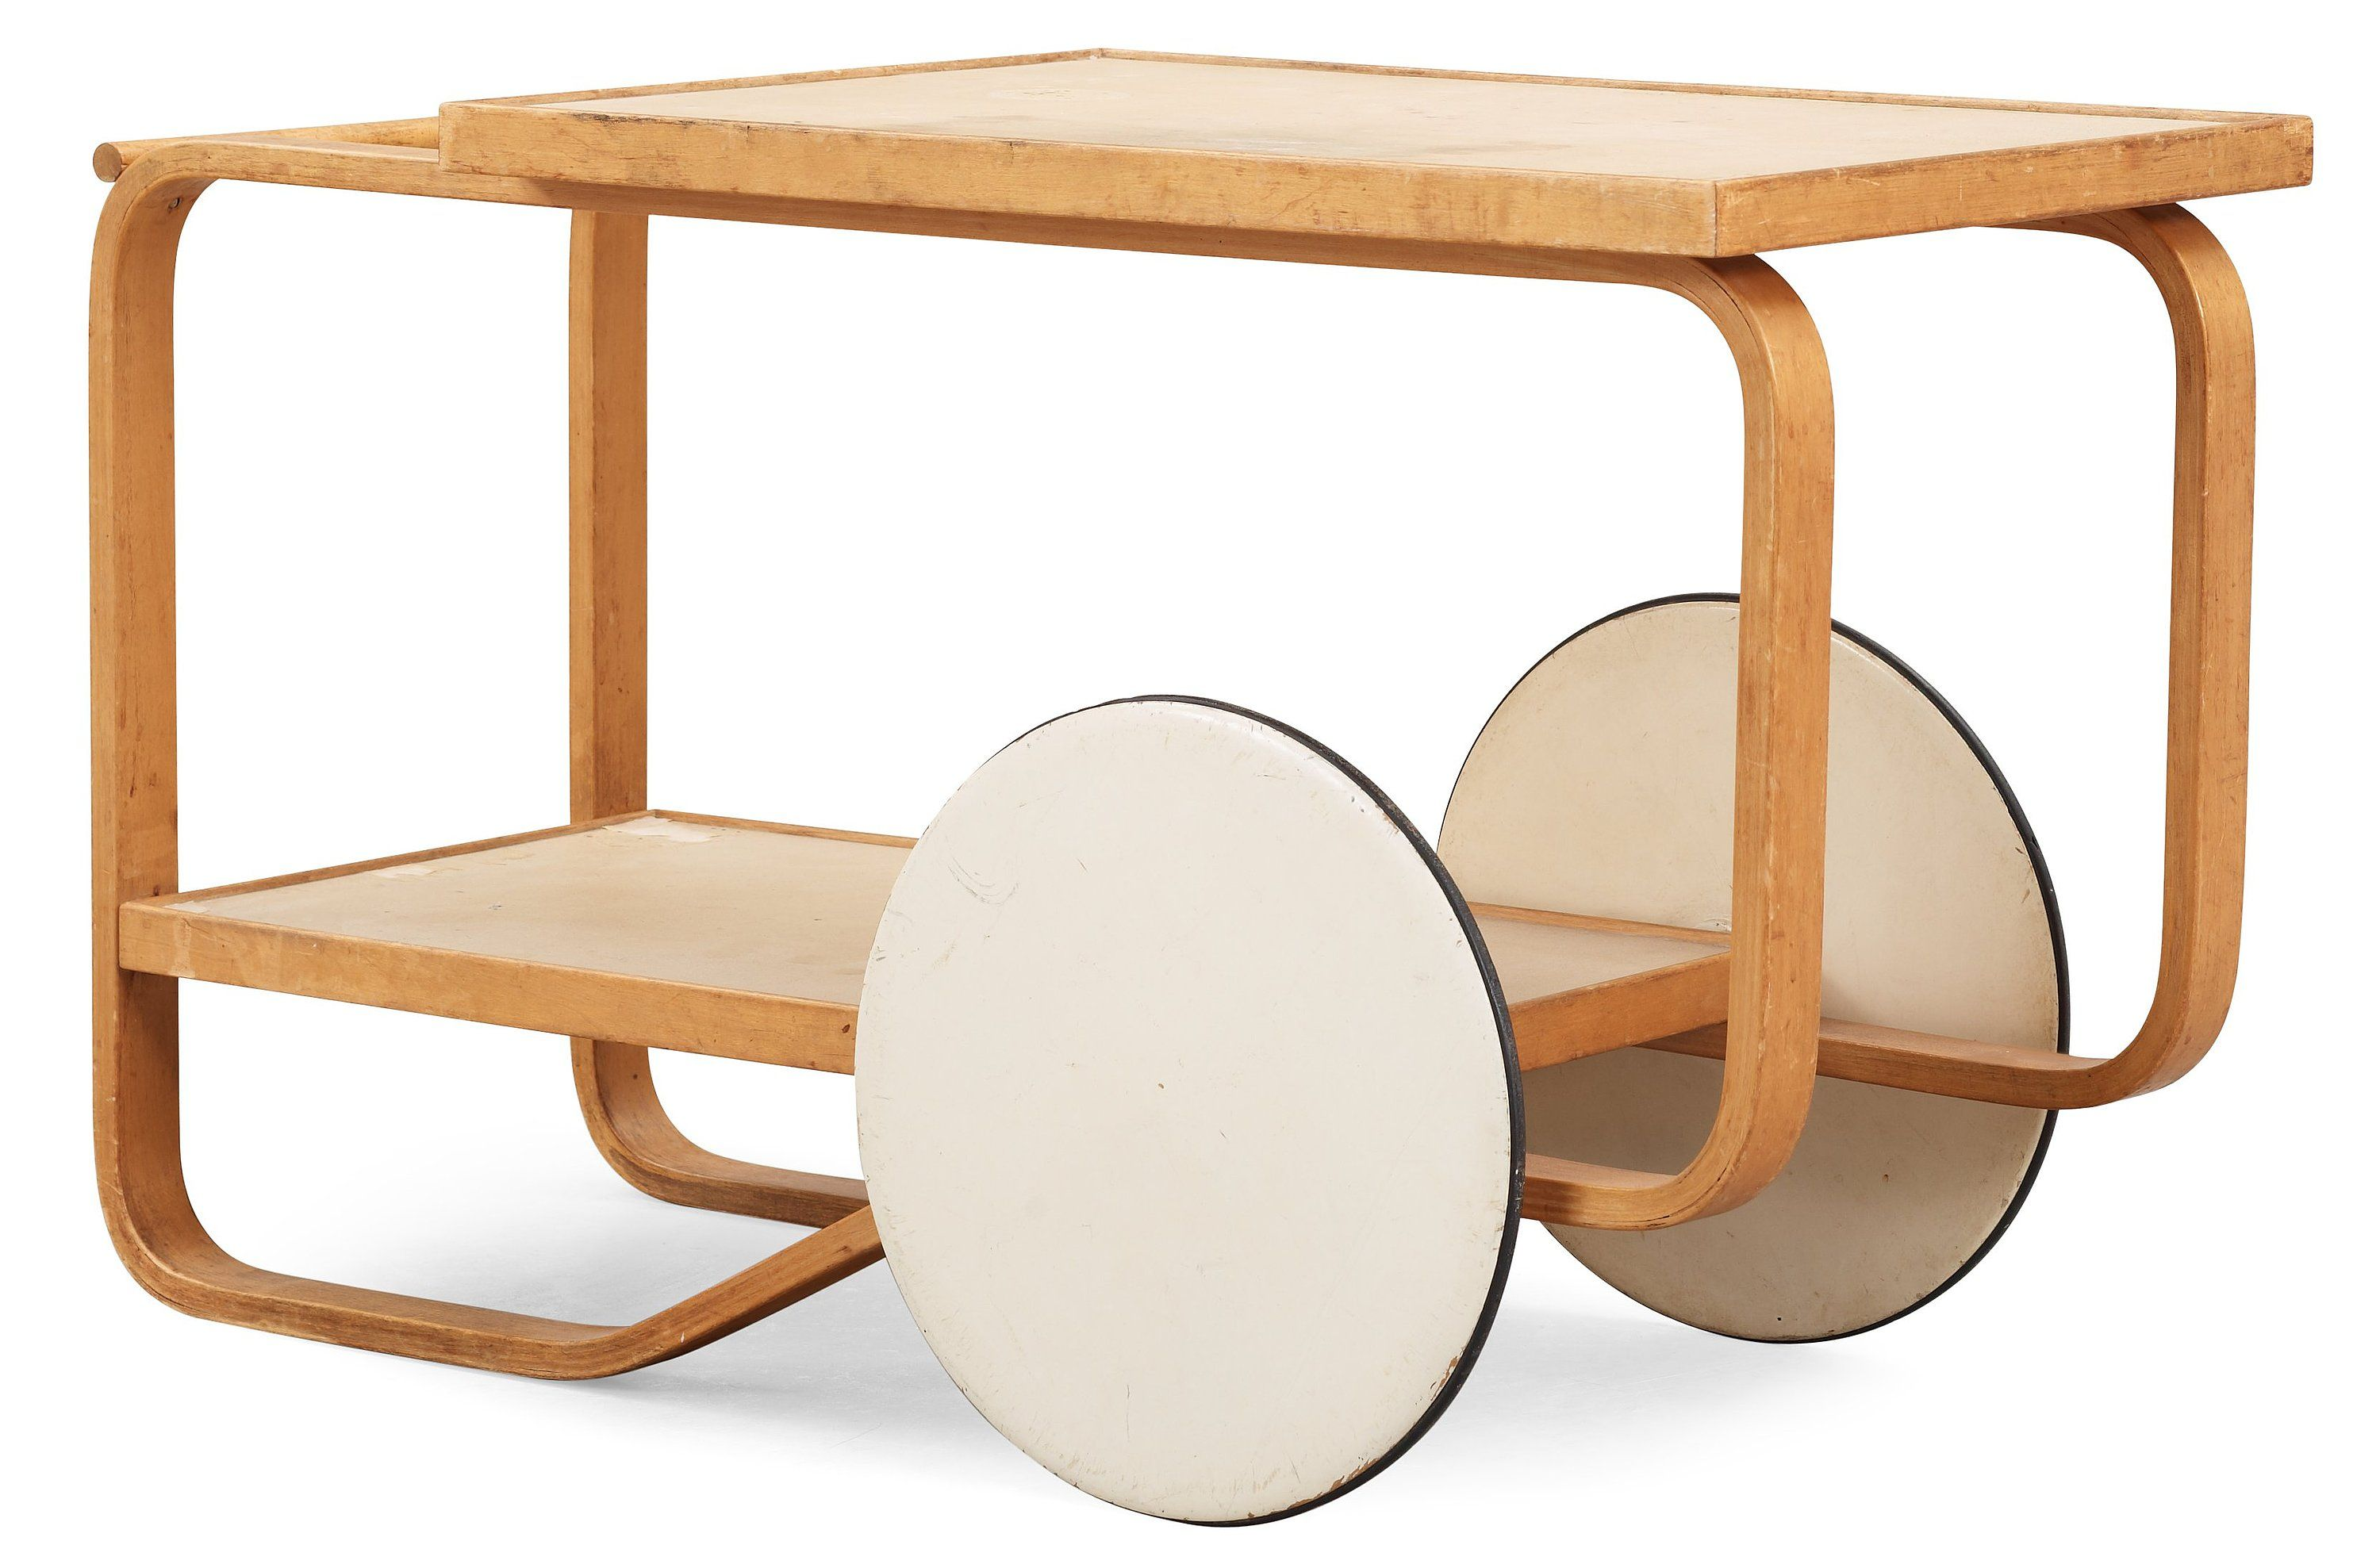 Alvar aalto drink trolley trolleys furniture design for Alvar aalto muebles